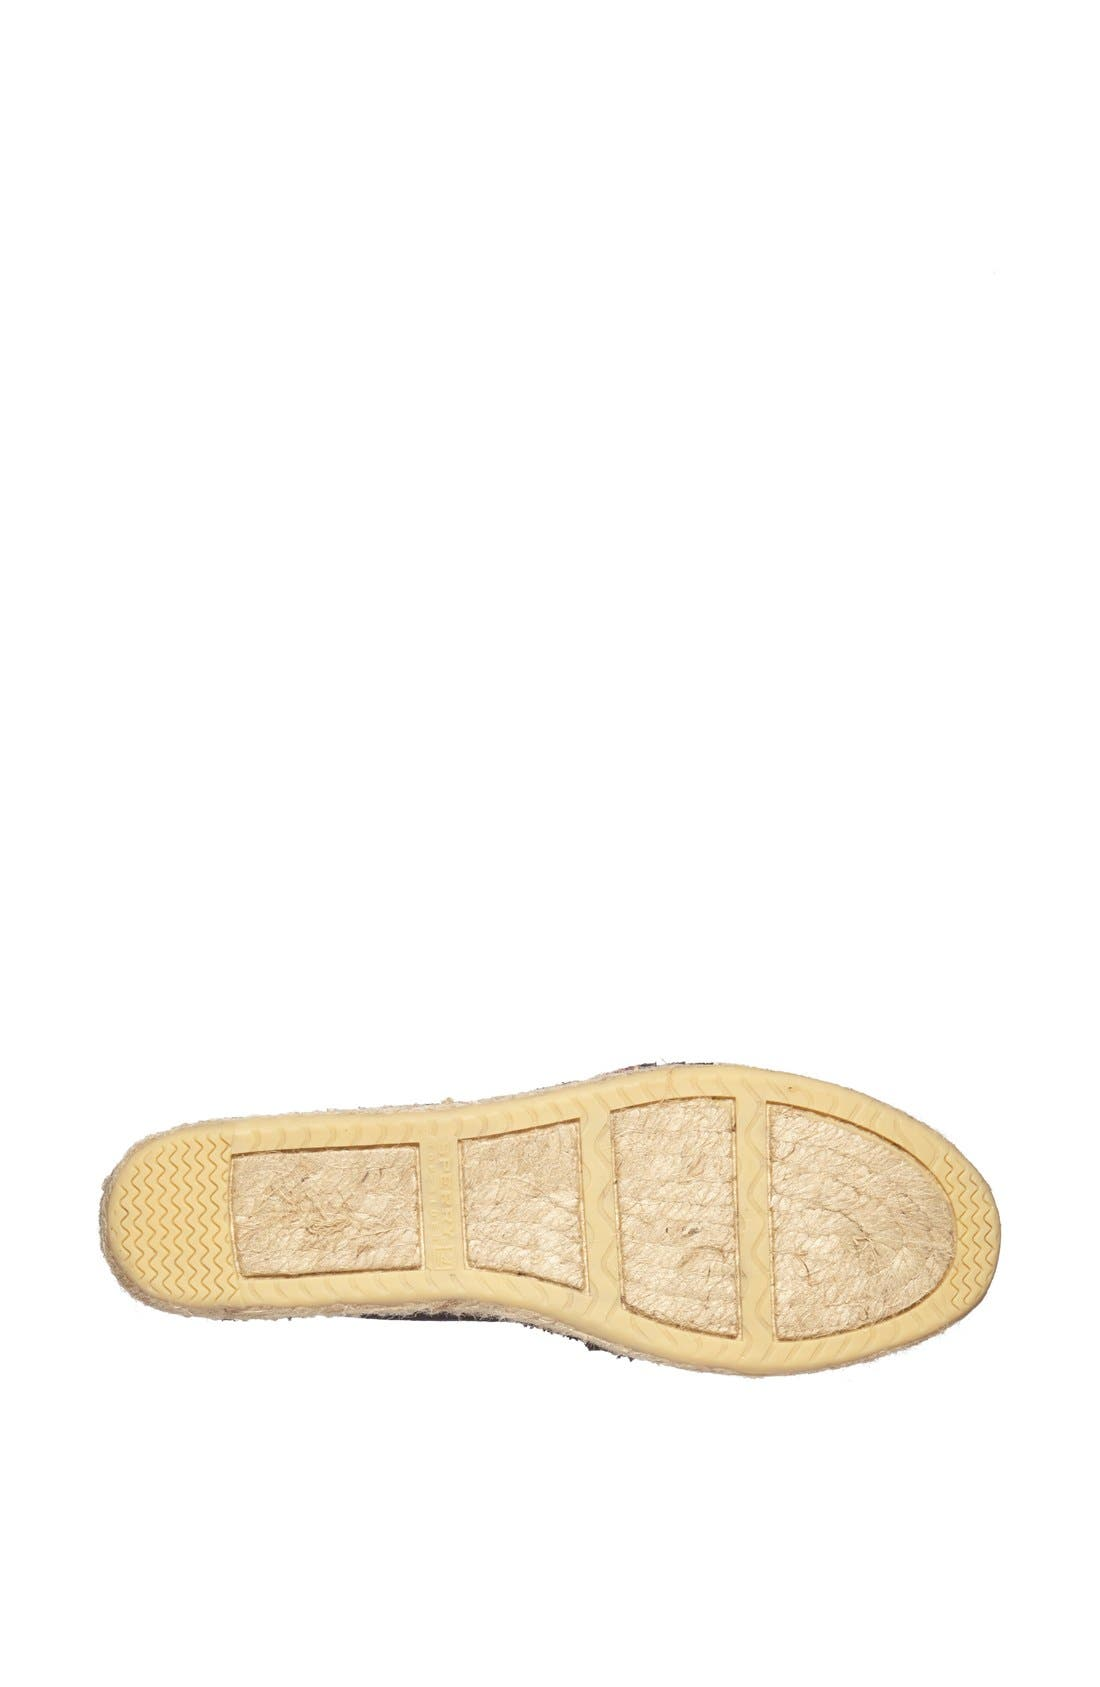 SPERRY, DANICA FLAT, Alternate thumbnail 4, color, 001